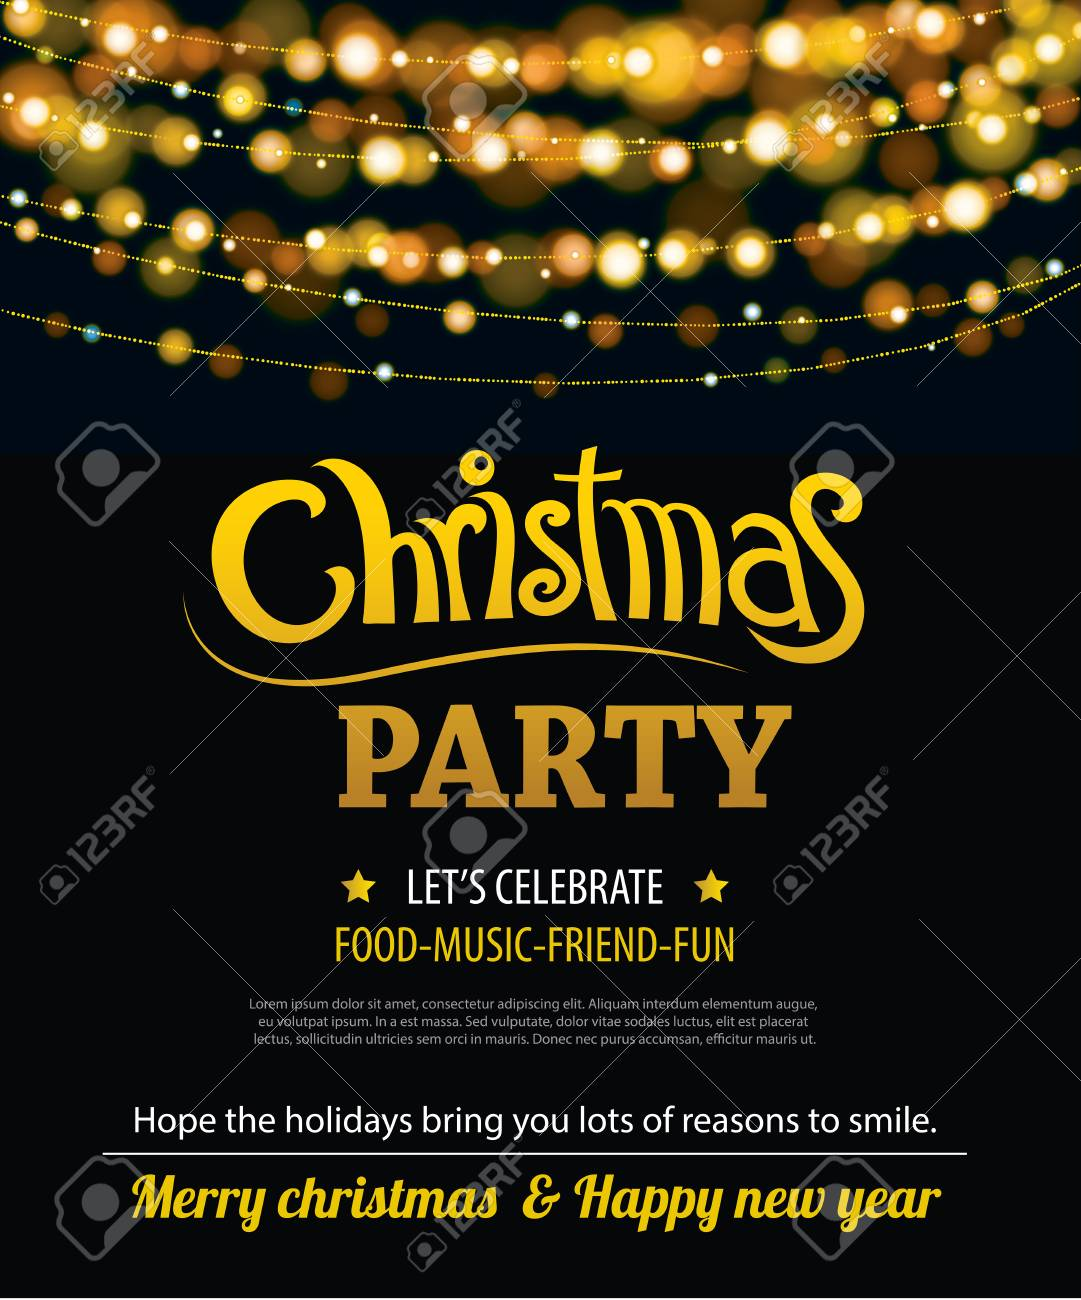 Christmas Party Poster.Invitation Merry Christmas Party Poster Banner And Card Design